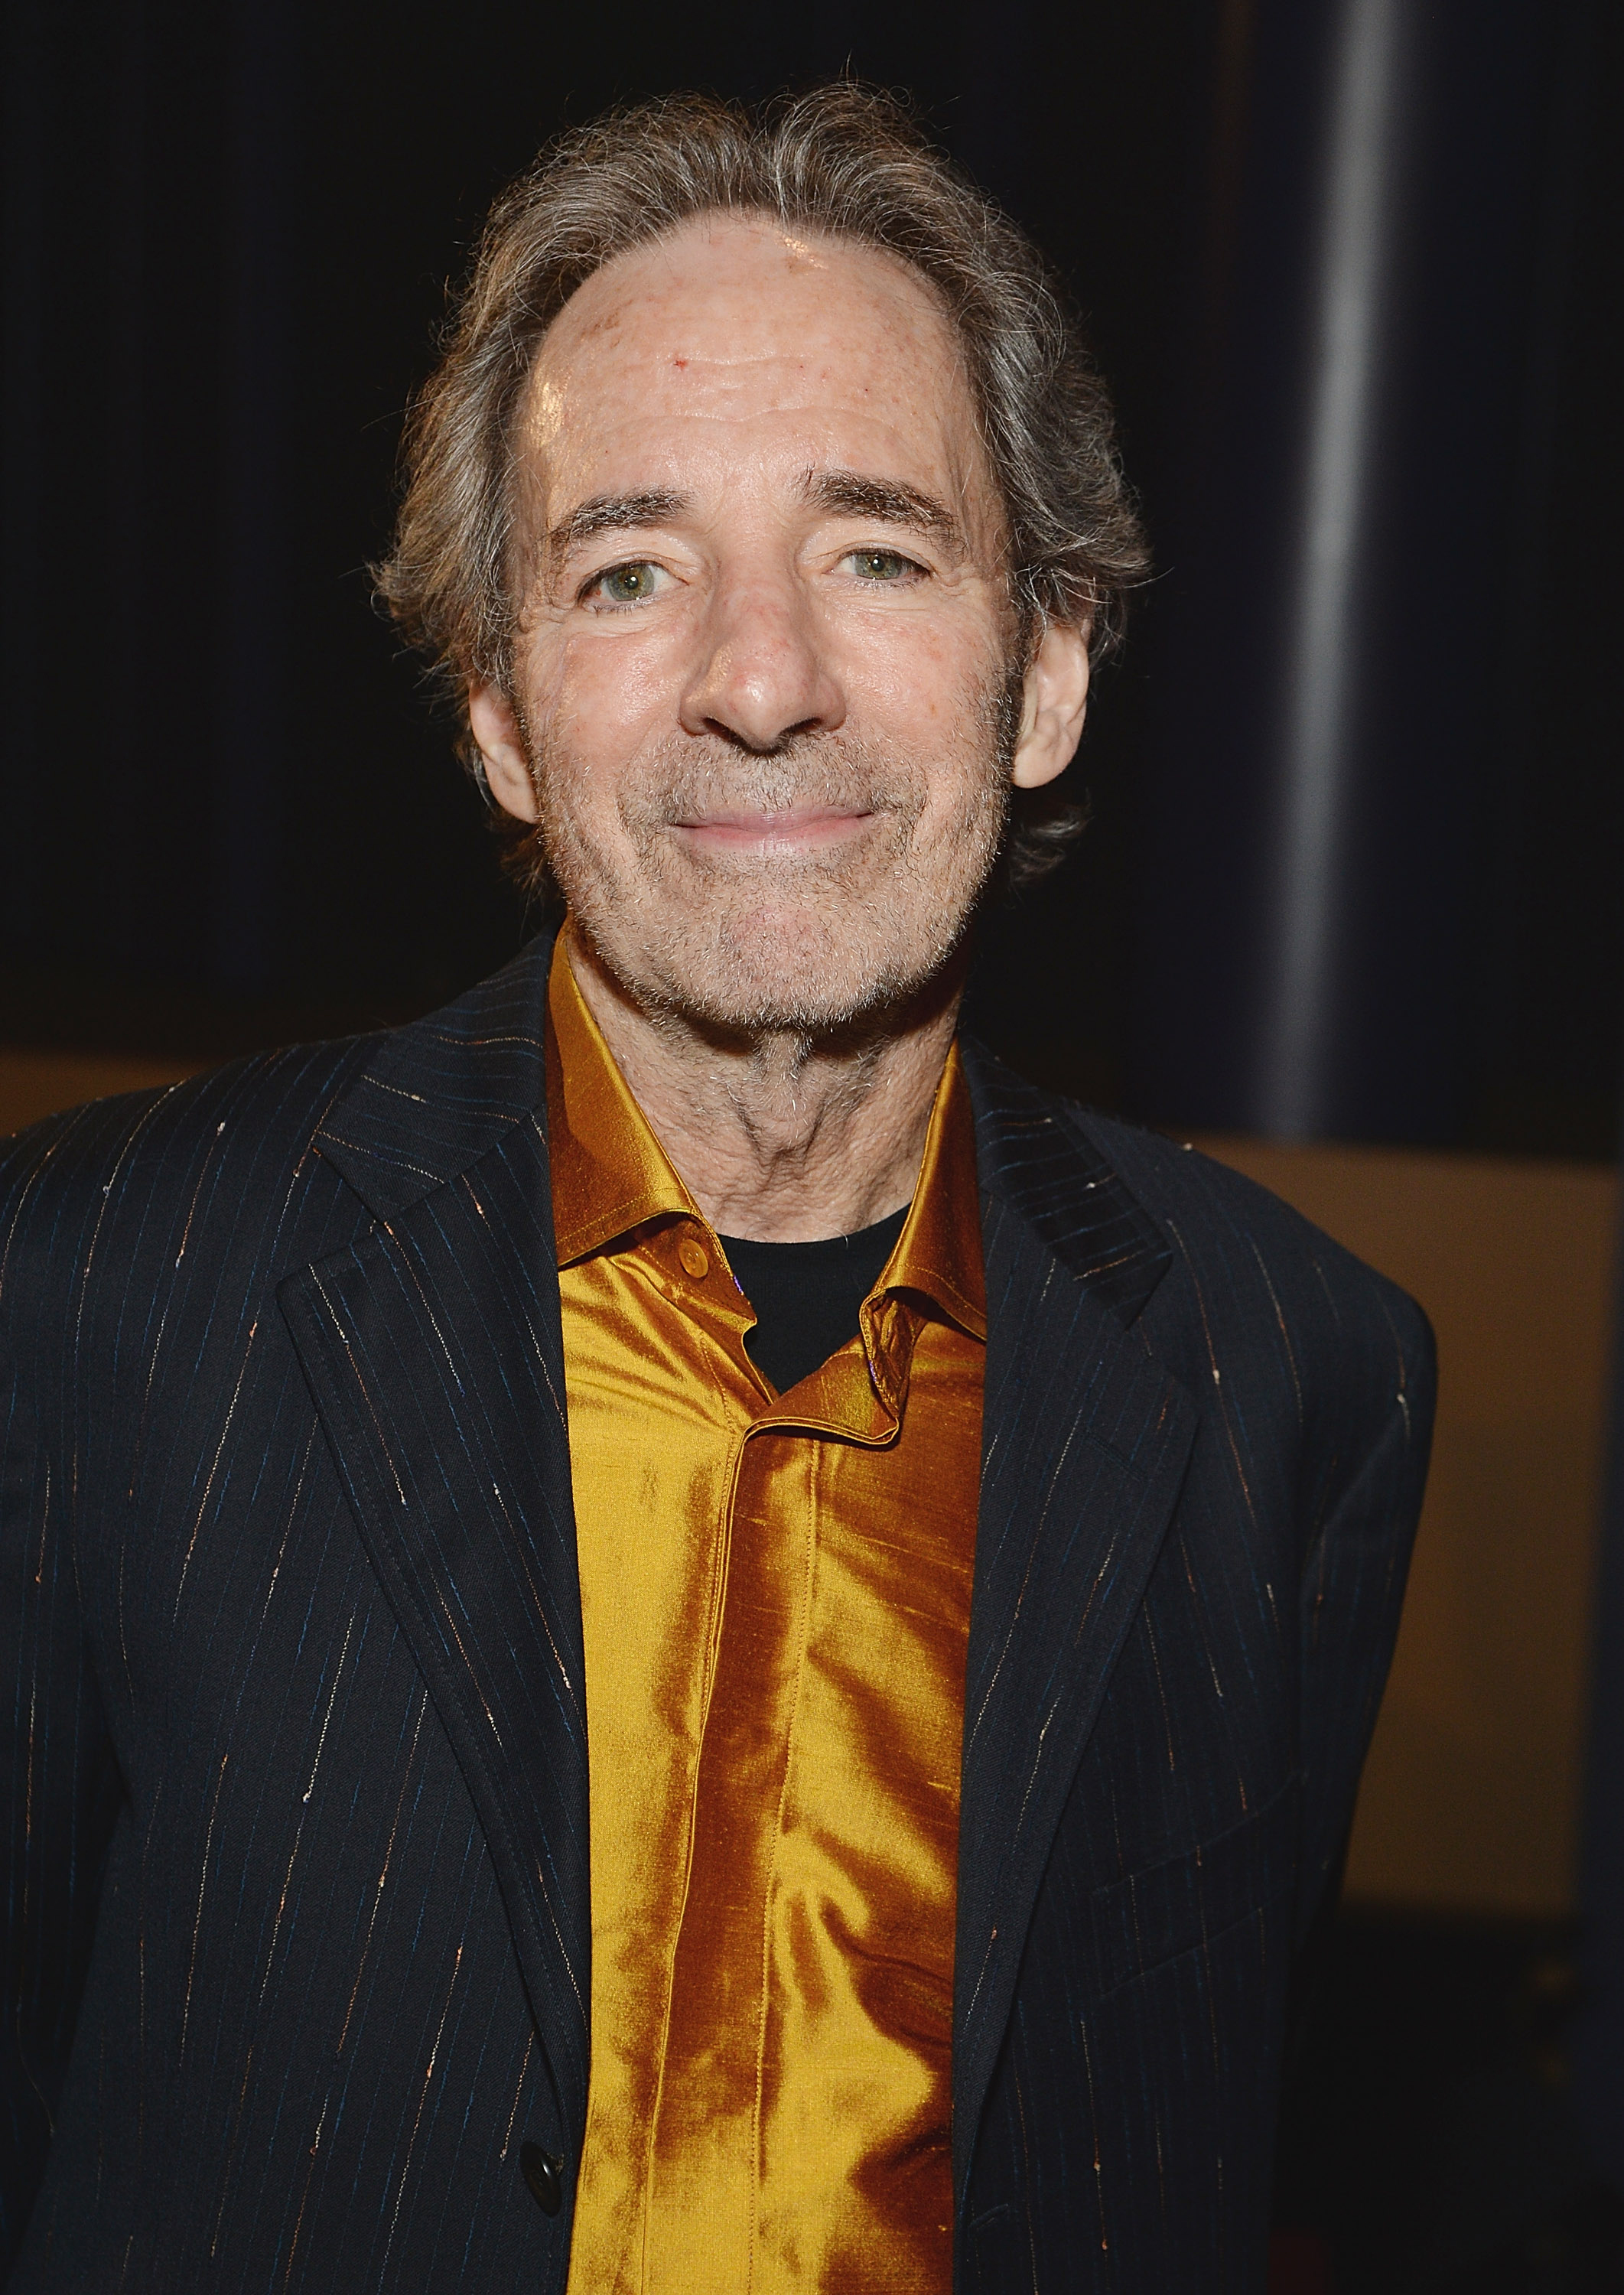 Actor Harry Shearer attends American Cinematheque Hosts the Genius of Stan Freberg: 70 Years of Creative Entertainment at the Egyptian Theatre in Hollywood on Nov. 2, 2014